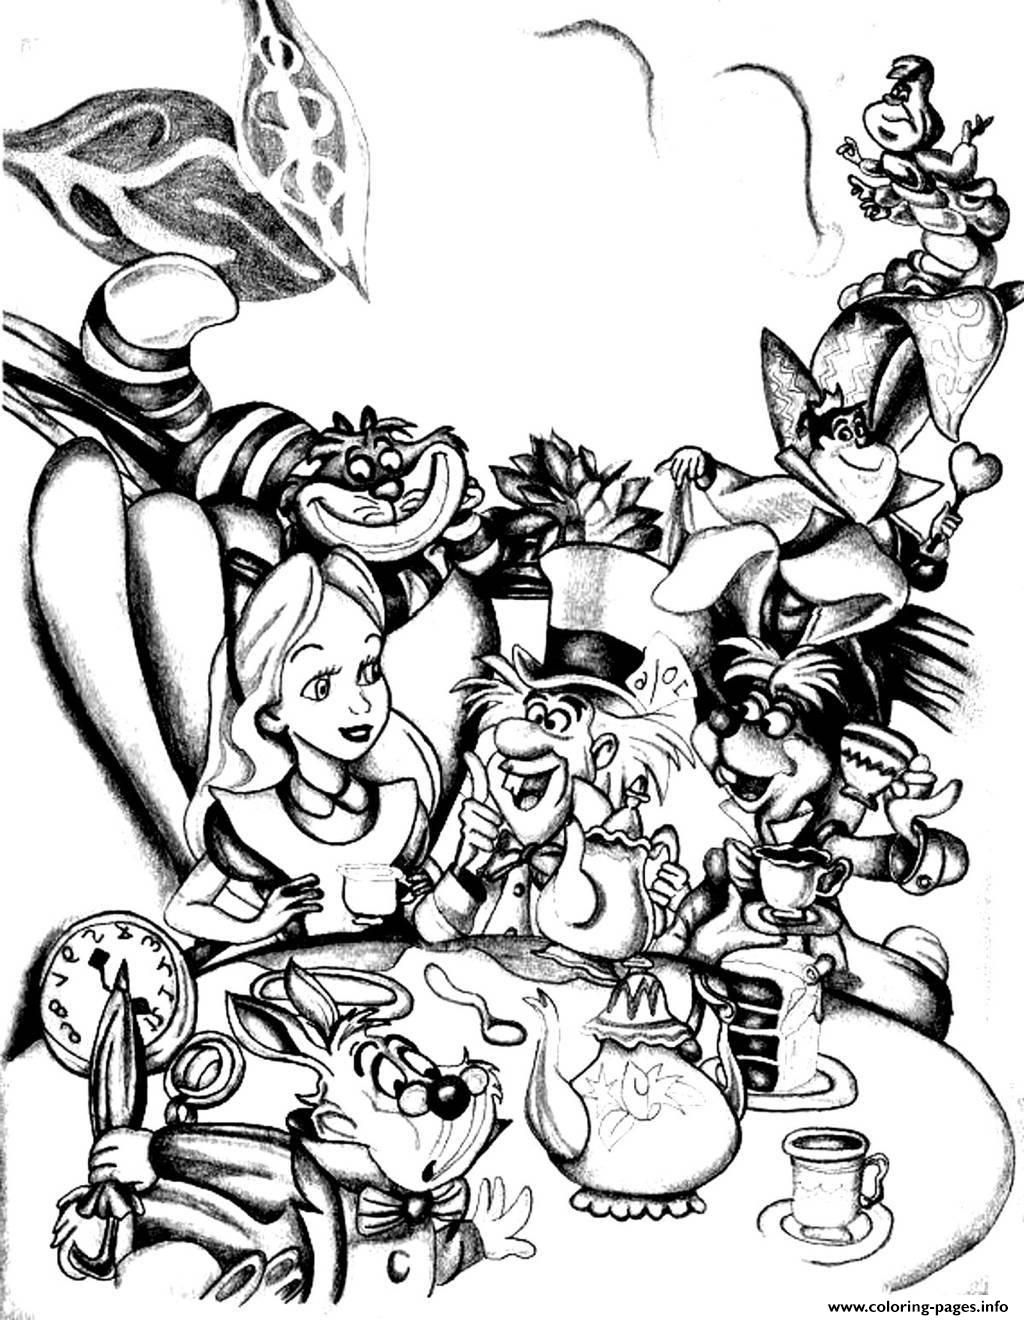 Adult Disney Drawing Alice In Wonderland Coloring Pages Printable And Book To Print For Free Find More Online Kids Adults